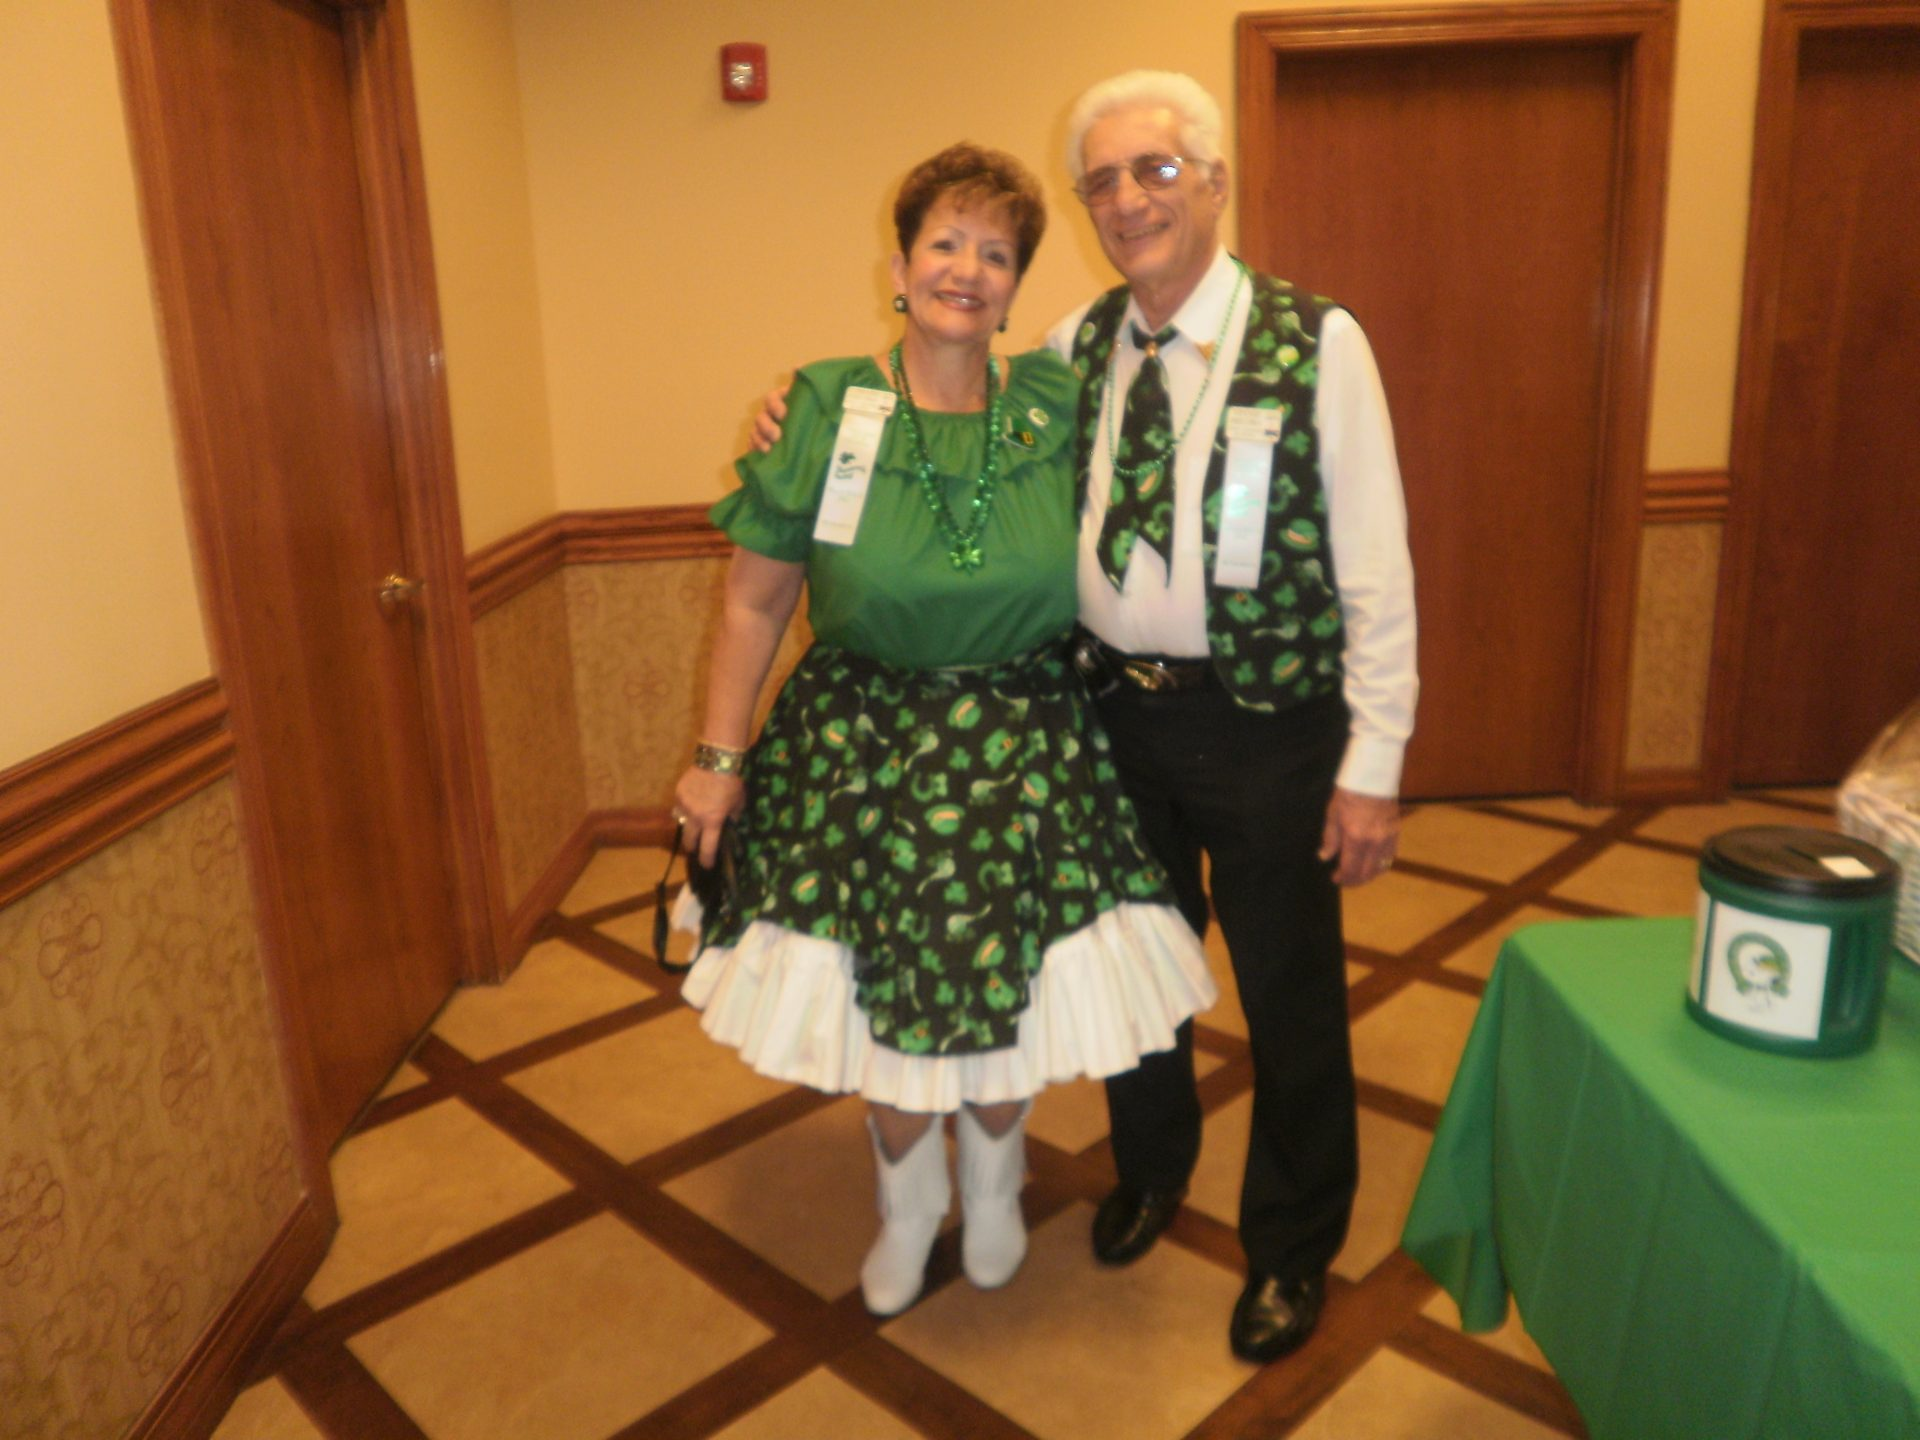 One of his favorite dances was the St. Patty's dance.   Vinnie never had to worry where to take me for our anniversary. lol!